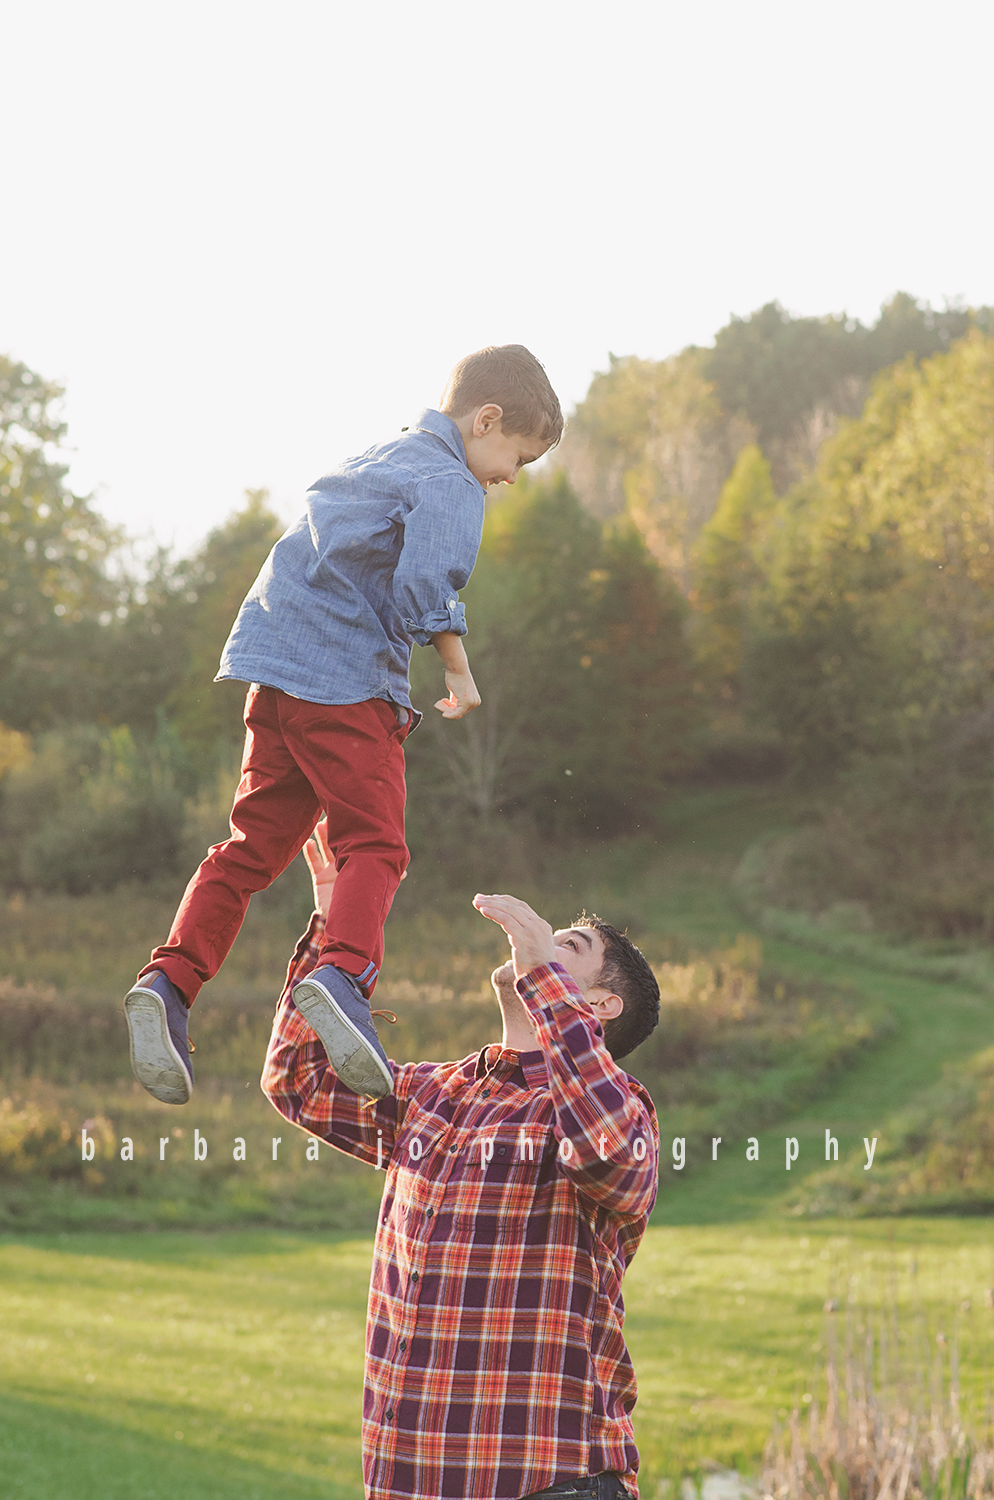 bjp-family-photographer-kids-siblings-blended-brothers-sisters-fall-mini-sessions-children-love-rachel3.png